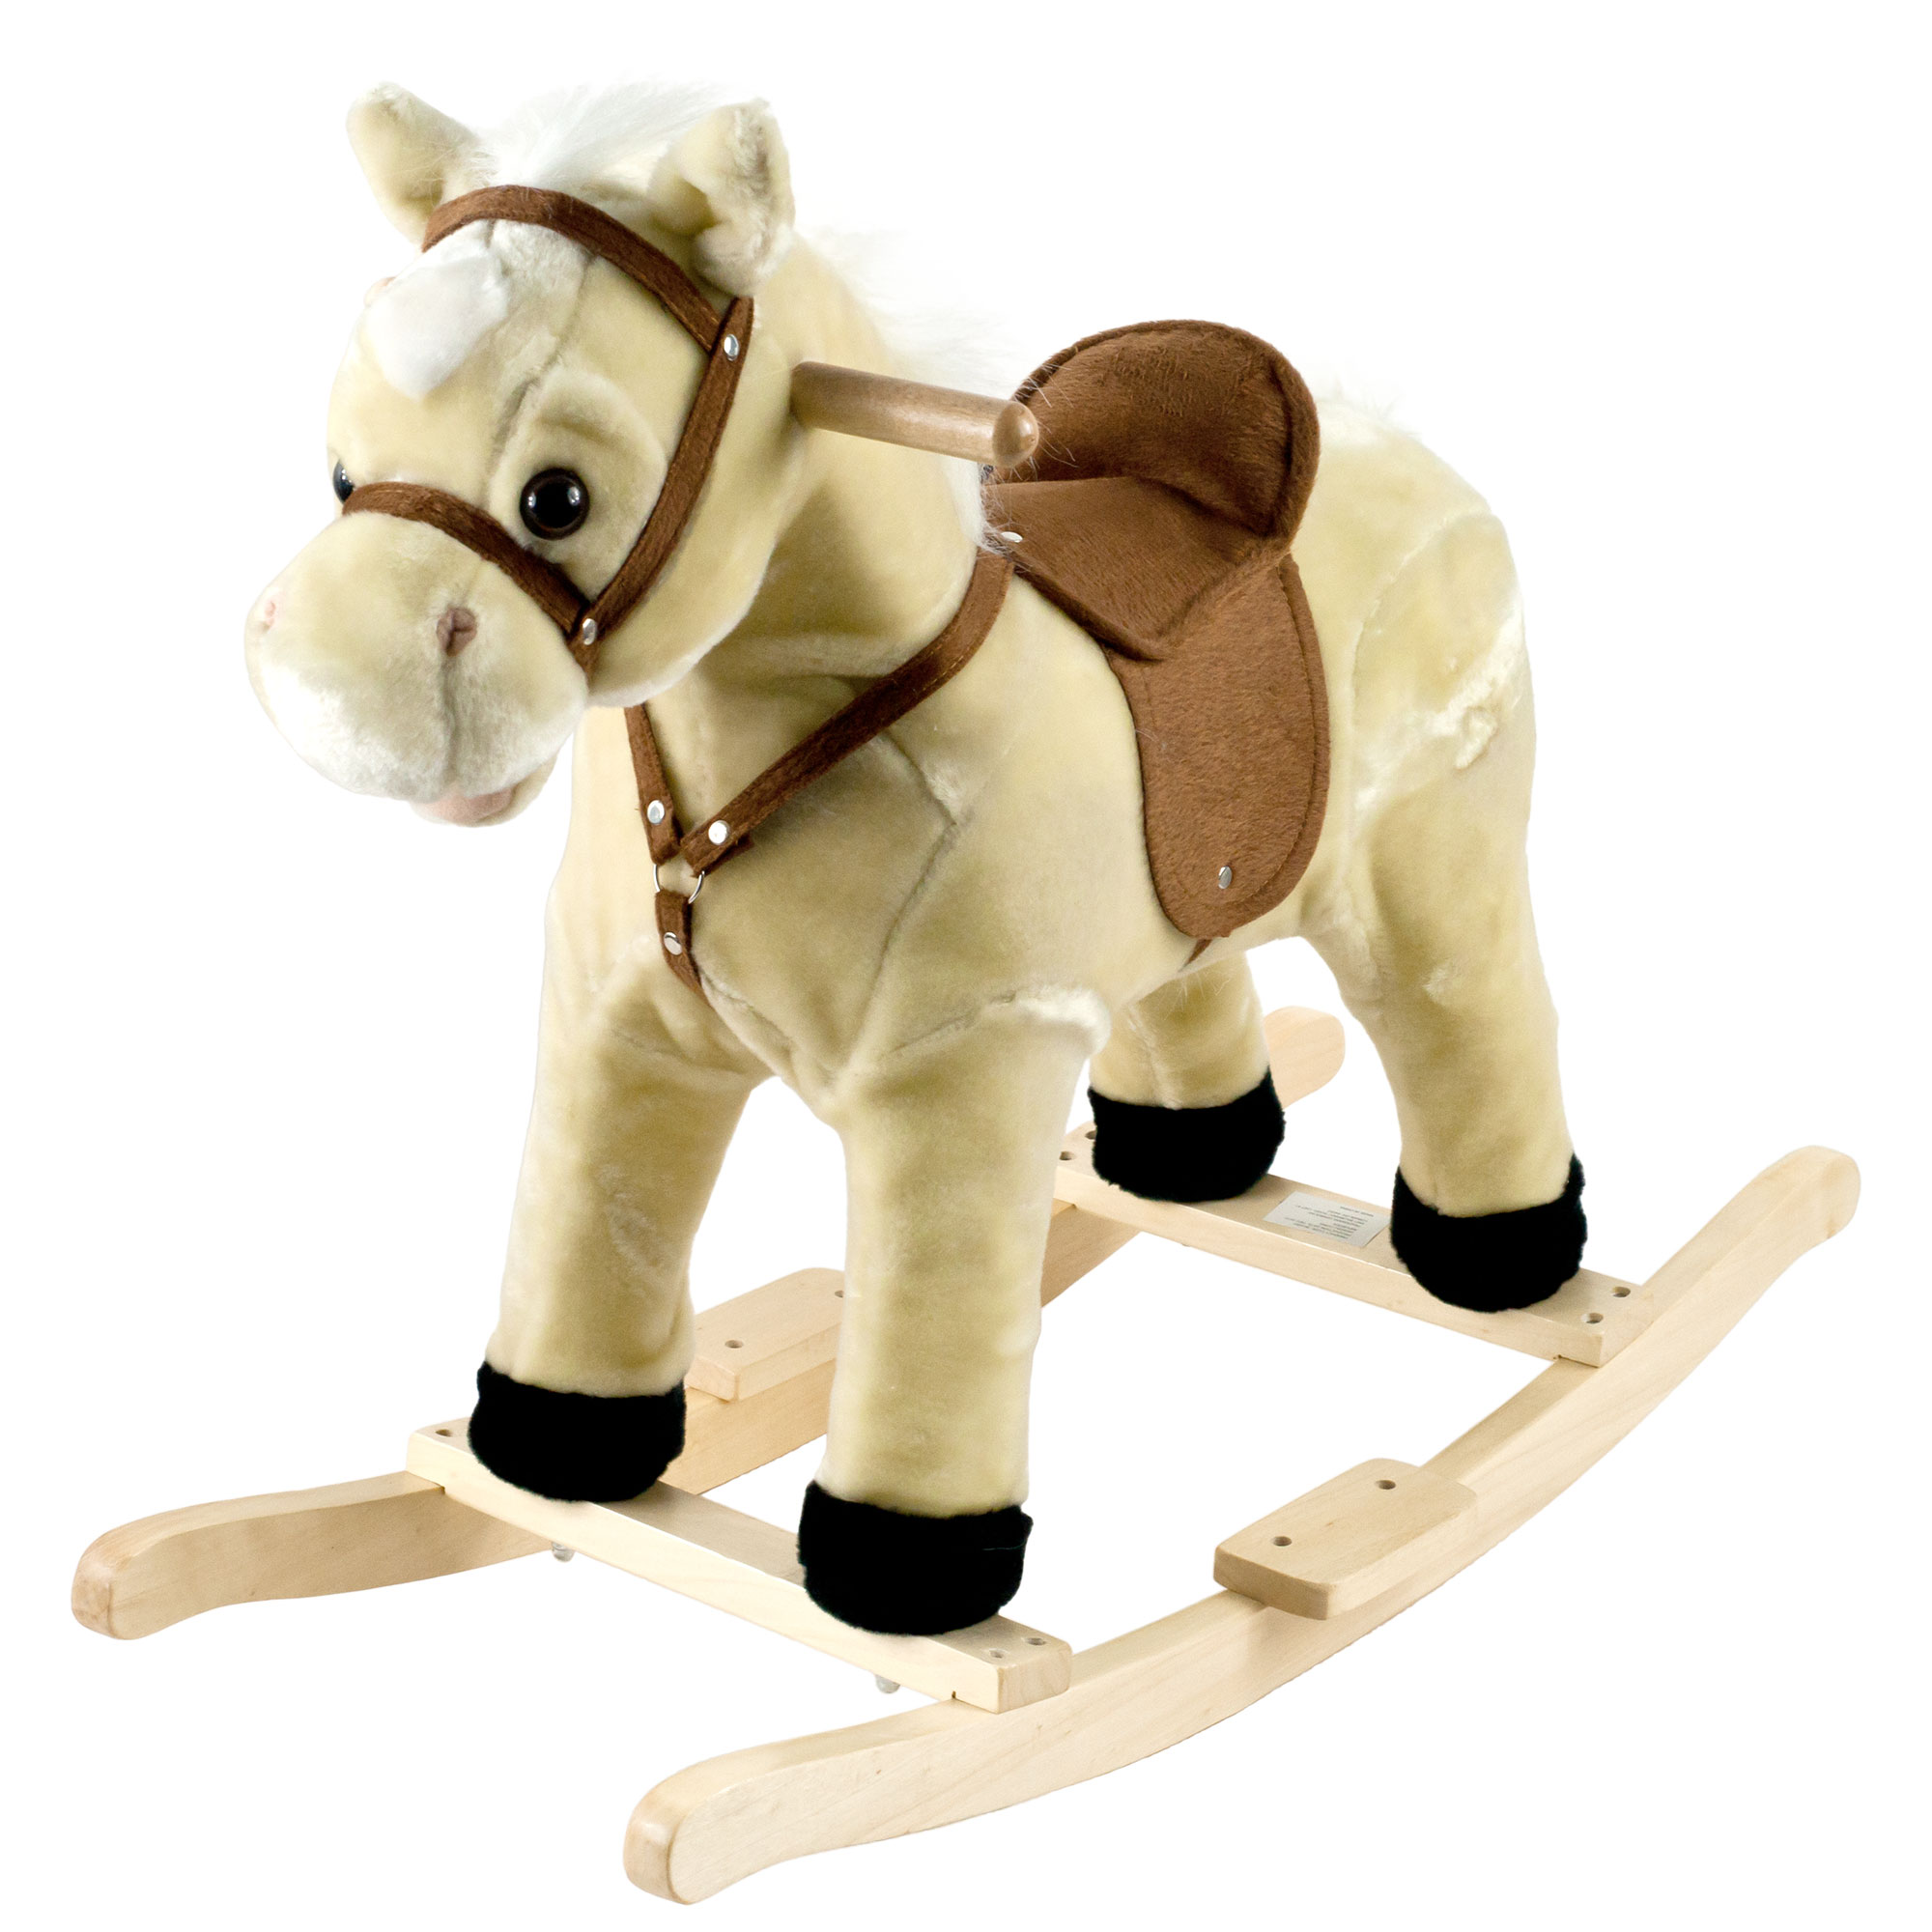 Lil Henry Rocking Horse, Brown Ride On Rocking Animal Toy by Happy Trails